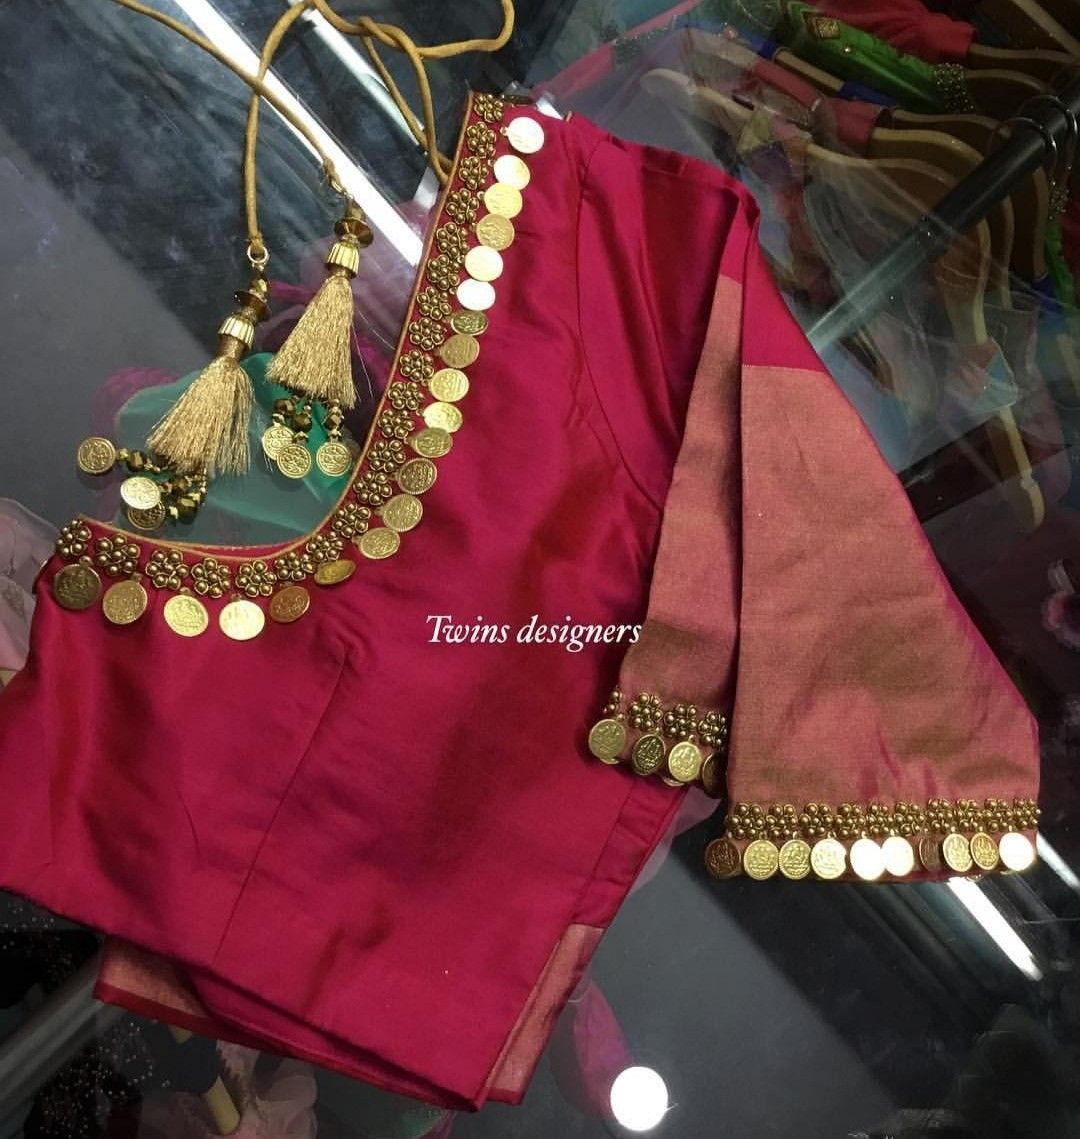 Pin By Anu Nair On Blouseee Blouse Work Designs Stylish Blouse Design Blouse Neck Designs